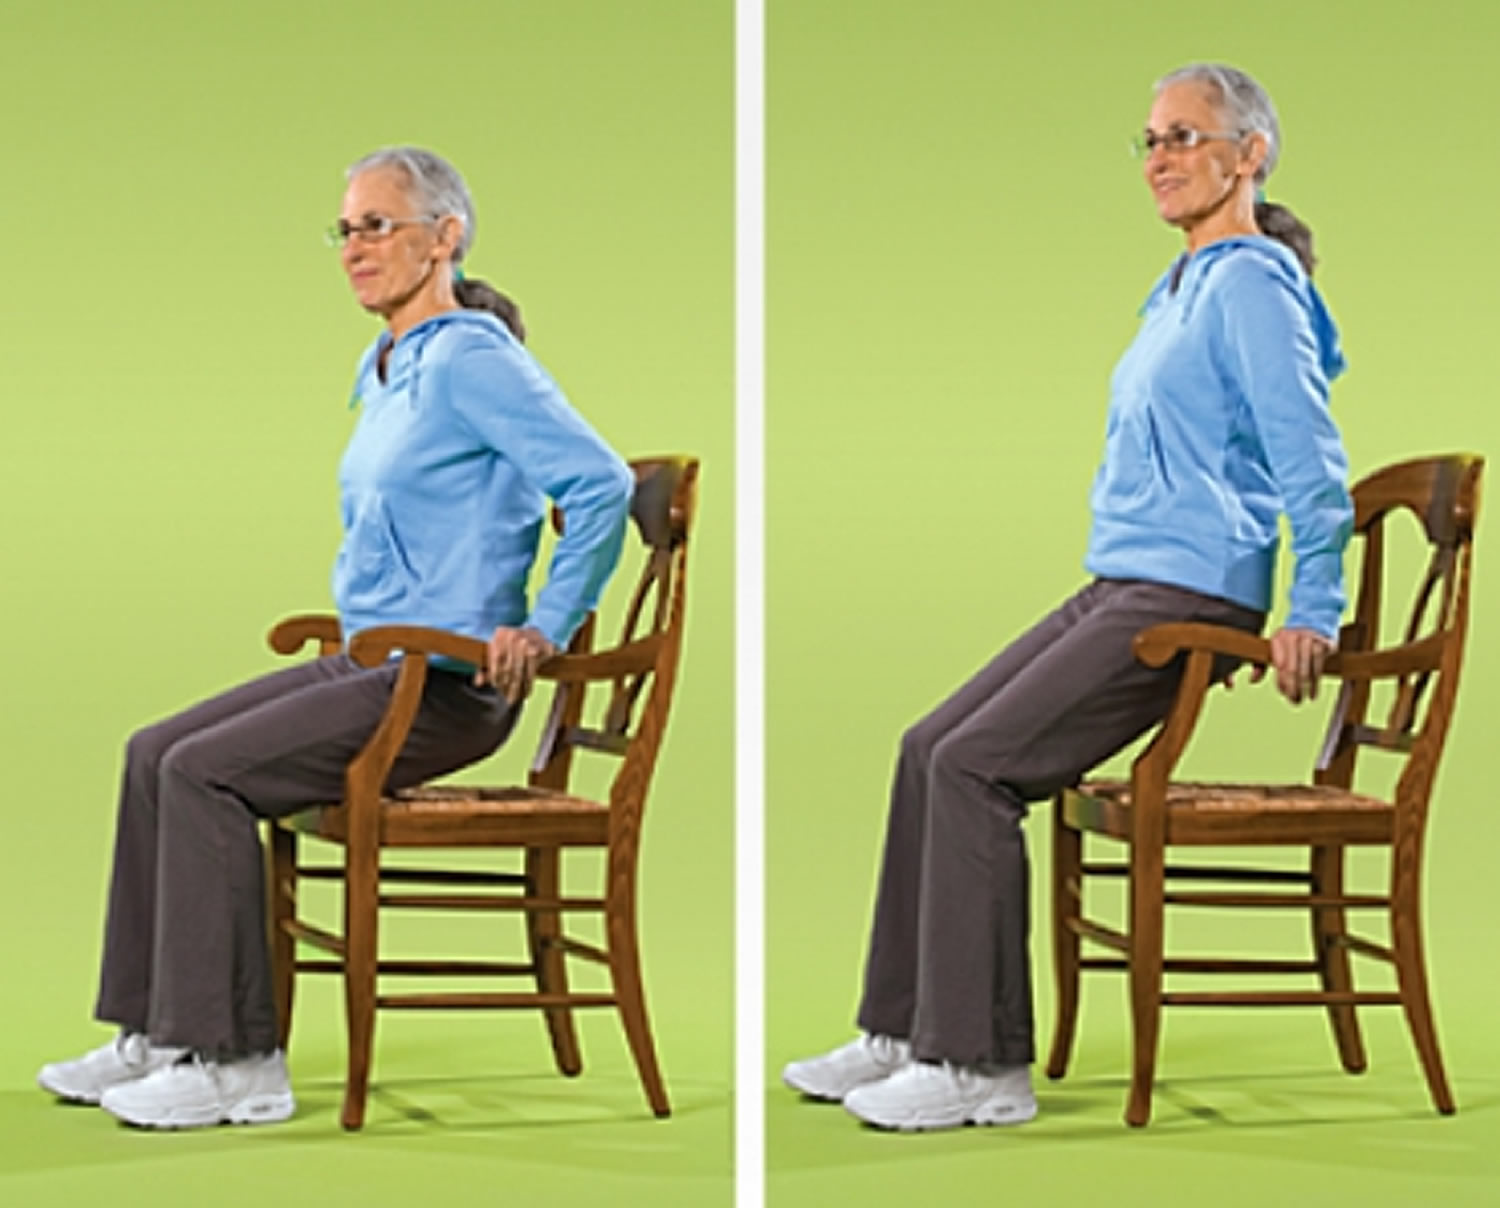 Chair exercises for seniors - Chair Dip Strength Exercise For Seniors